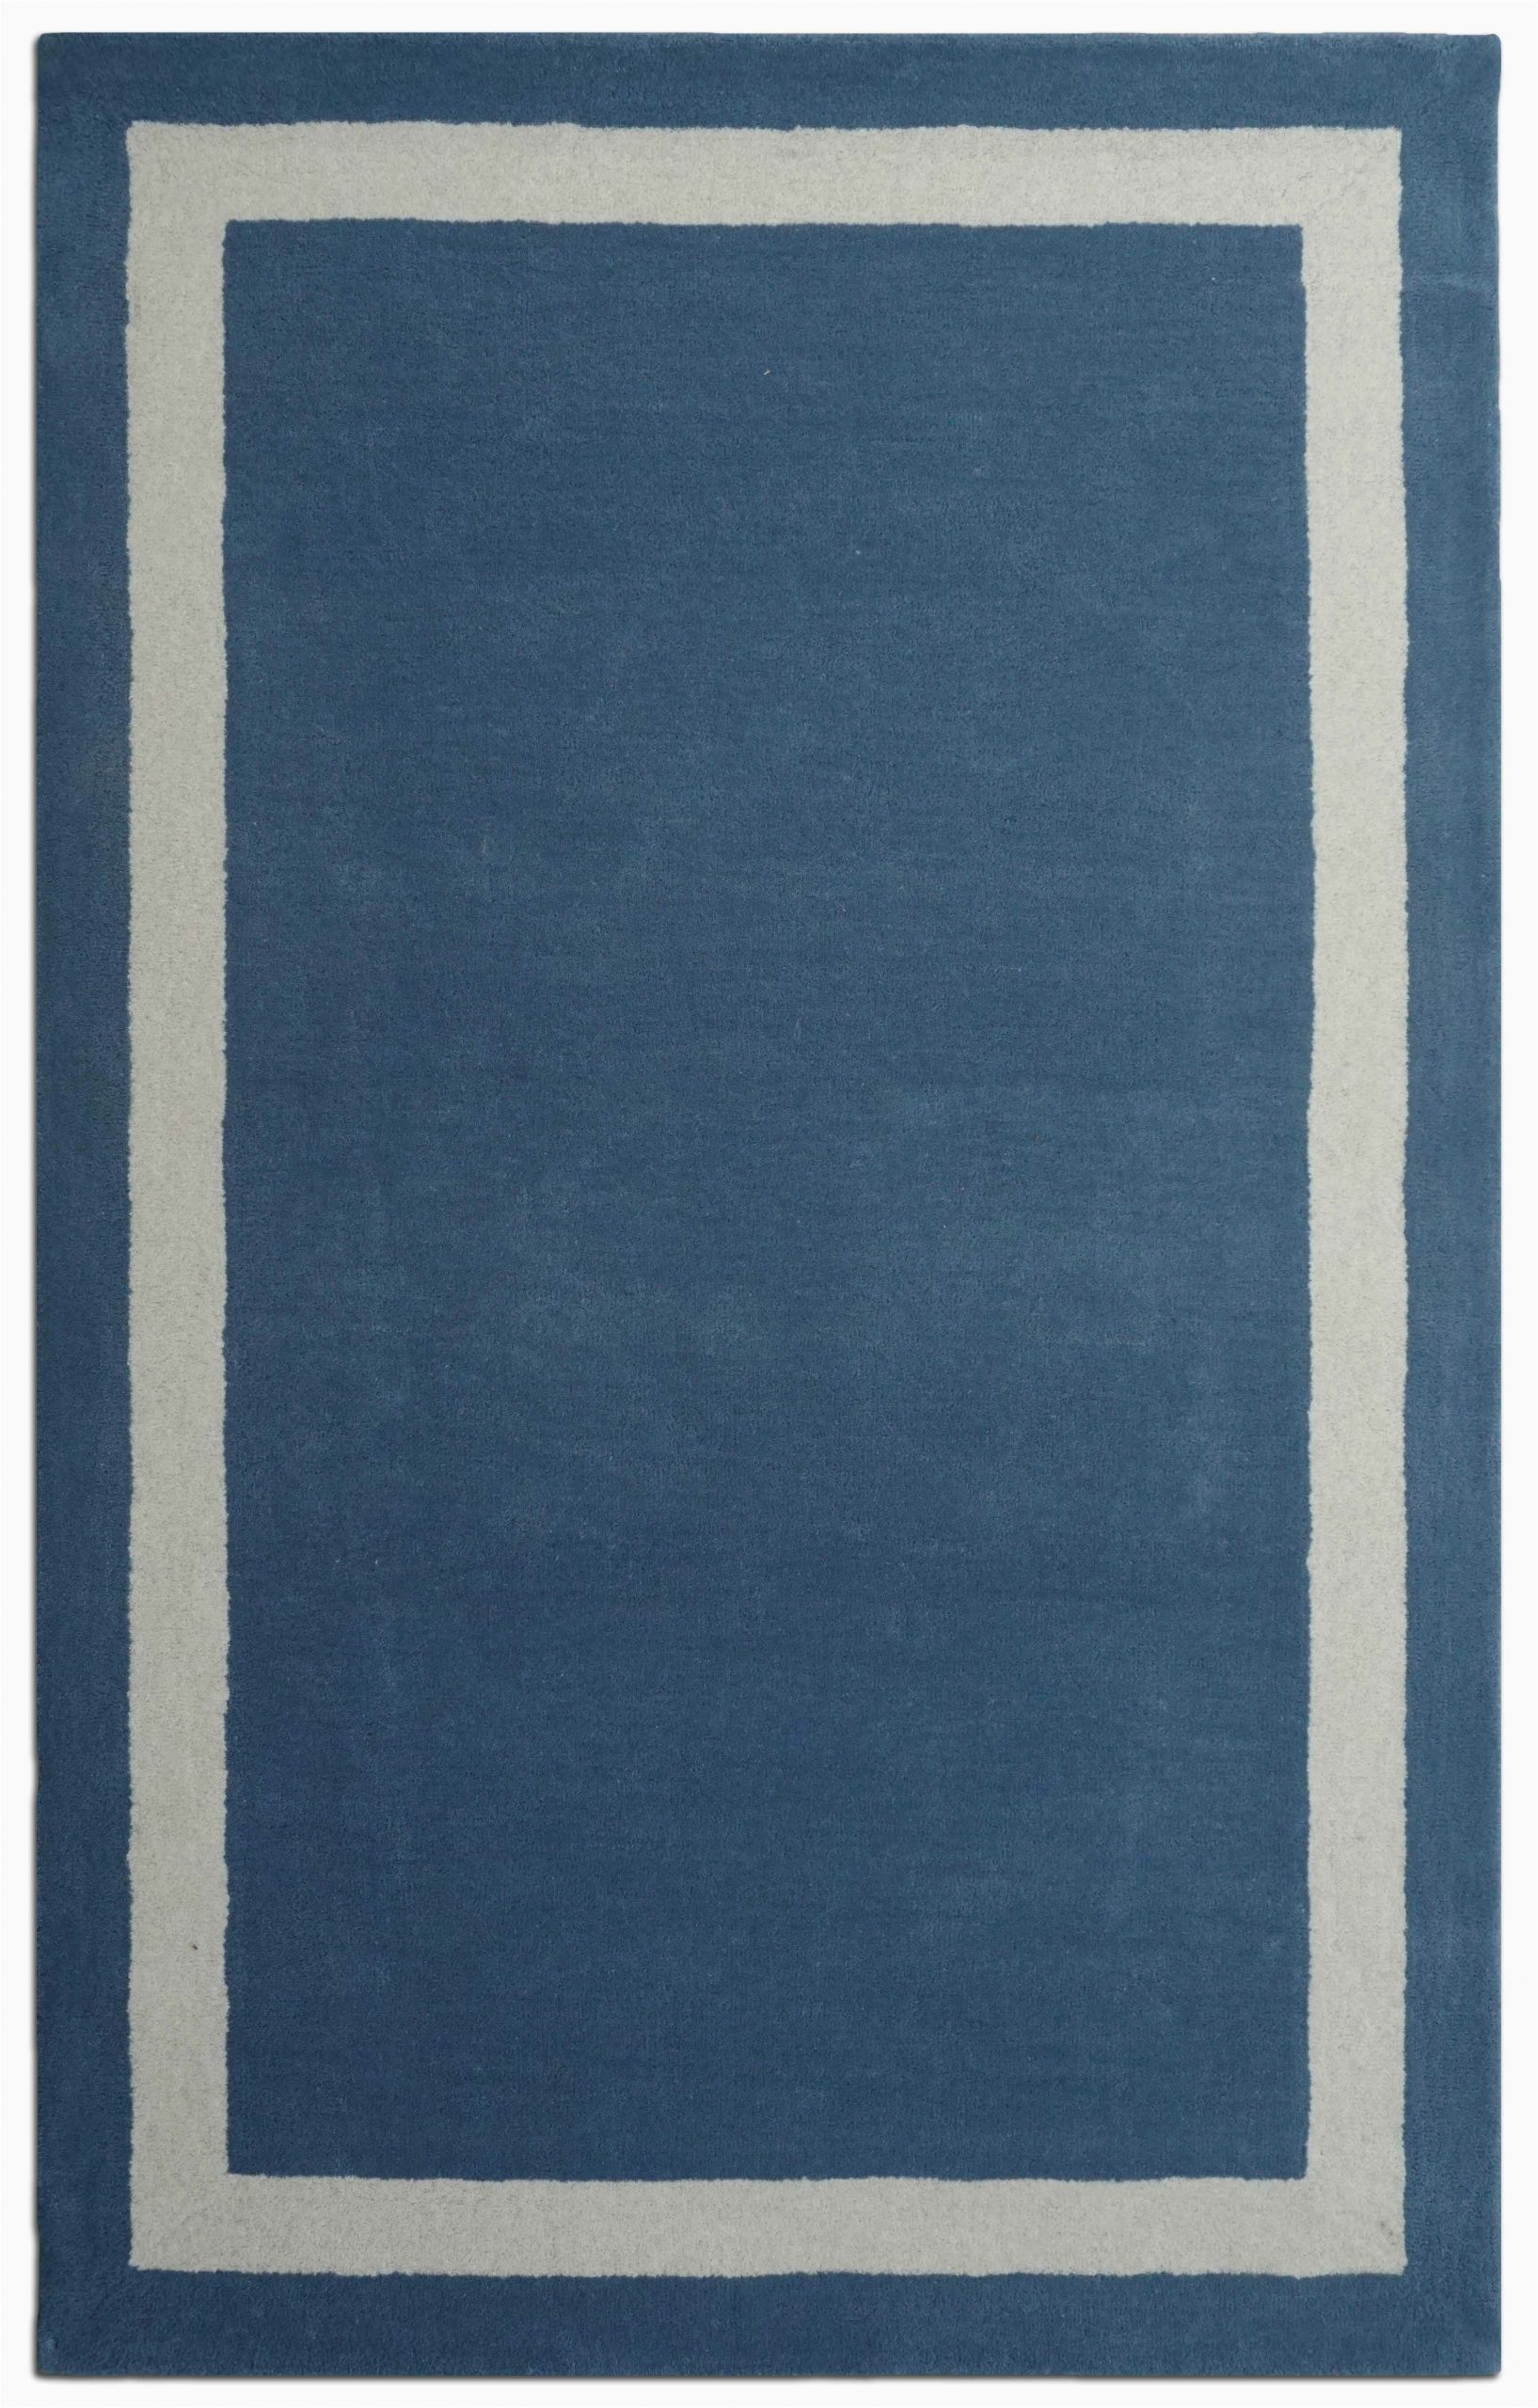 Navy Blue Border Rug Harlem Border Hand Tufted Wool Navy Blue White area Rug